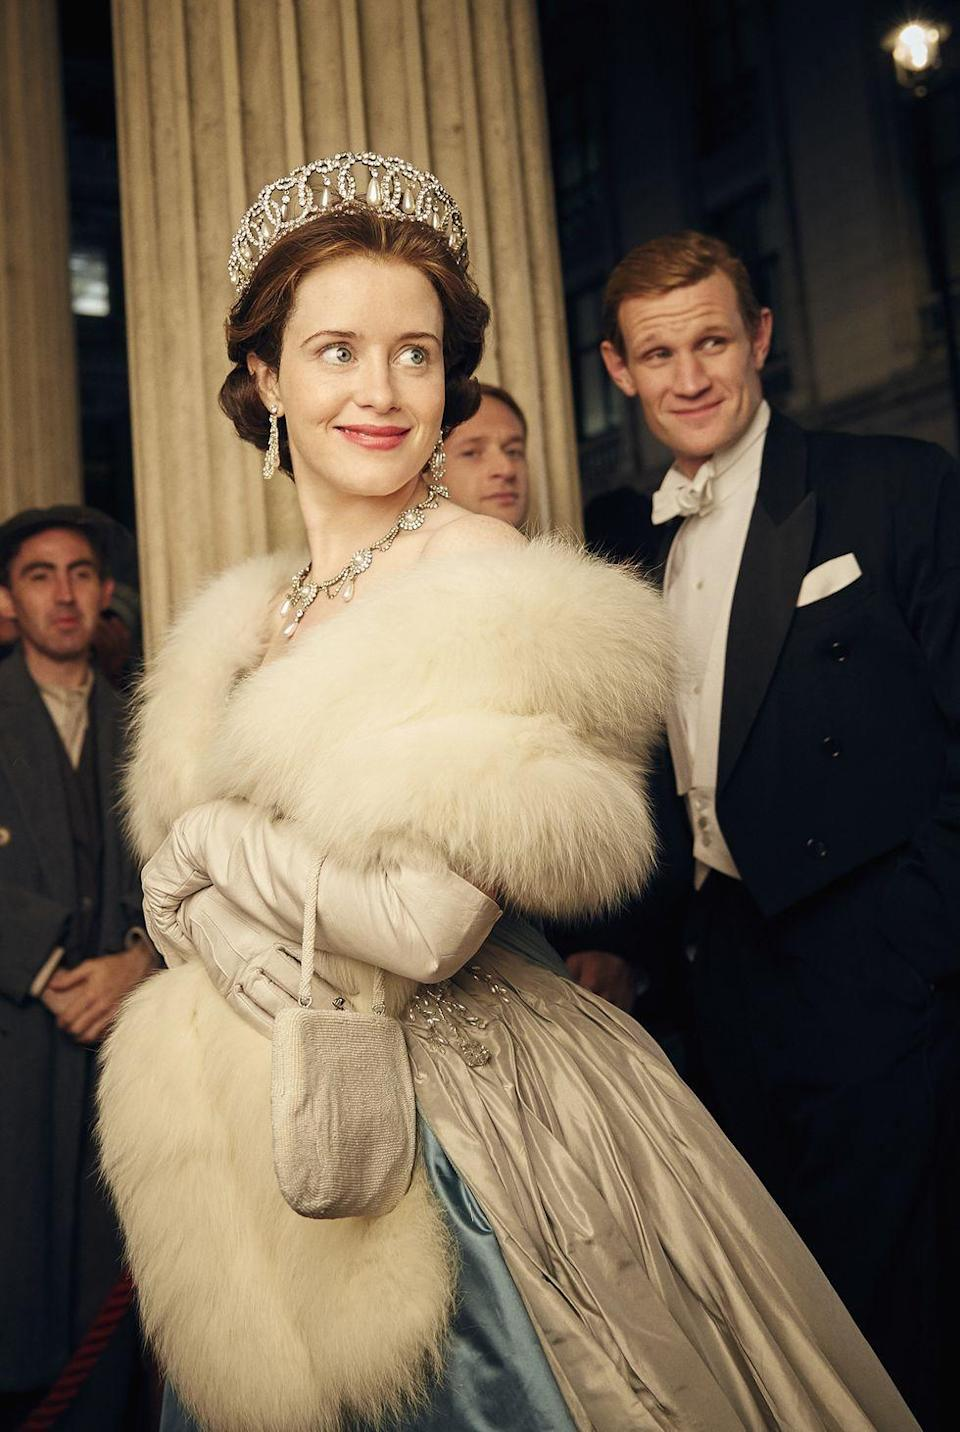 "<p>Foy told <em><a href=""https://www.vanityfair.com/hollywood/2016/11/the-crown-clair-foy-queen-elizabeth-interview"" rel=""nofollow noopener"" target=""_blank"" data-ylk=""slk:Vanity Fair"" class=""link rapid-noclick-resp"">Vanity Fair</a></em> in 2016 that the notoriously uncomfortable undergarment actually helped her get into her role. ""I'd just had a baby when I started filming, so I had to wear a proper <span class=""redactor-unlink"">corset</span> because I was about five dress sizes bigger than I normally am. The corset helps you not slouch. Now we're doing the second series. I'm not wearing it anymore, but it stays with you, that posture, and being a lady.""</p>"